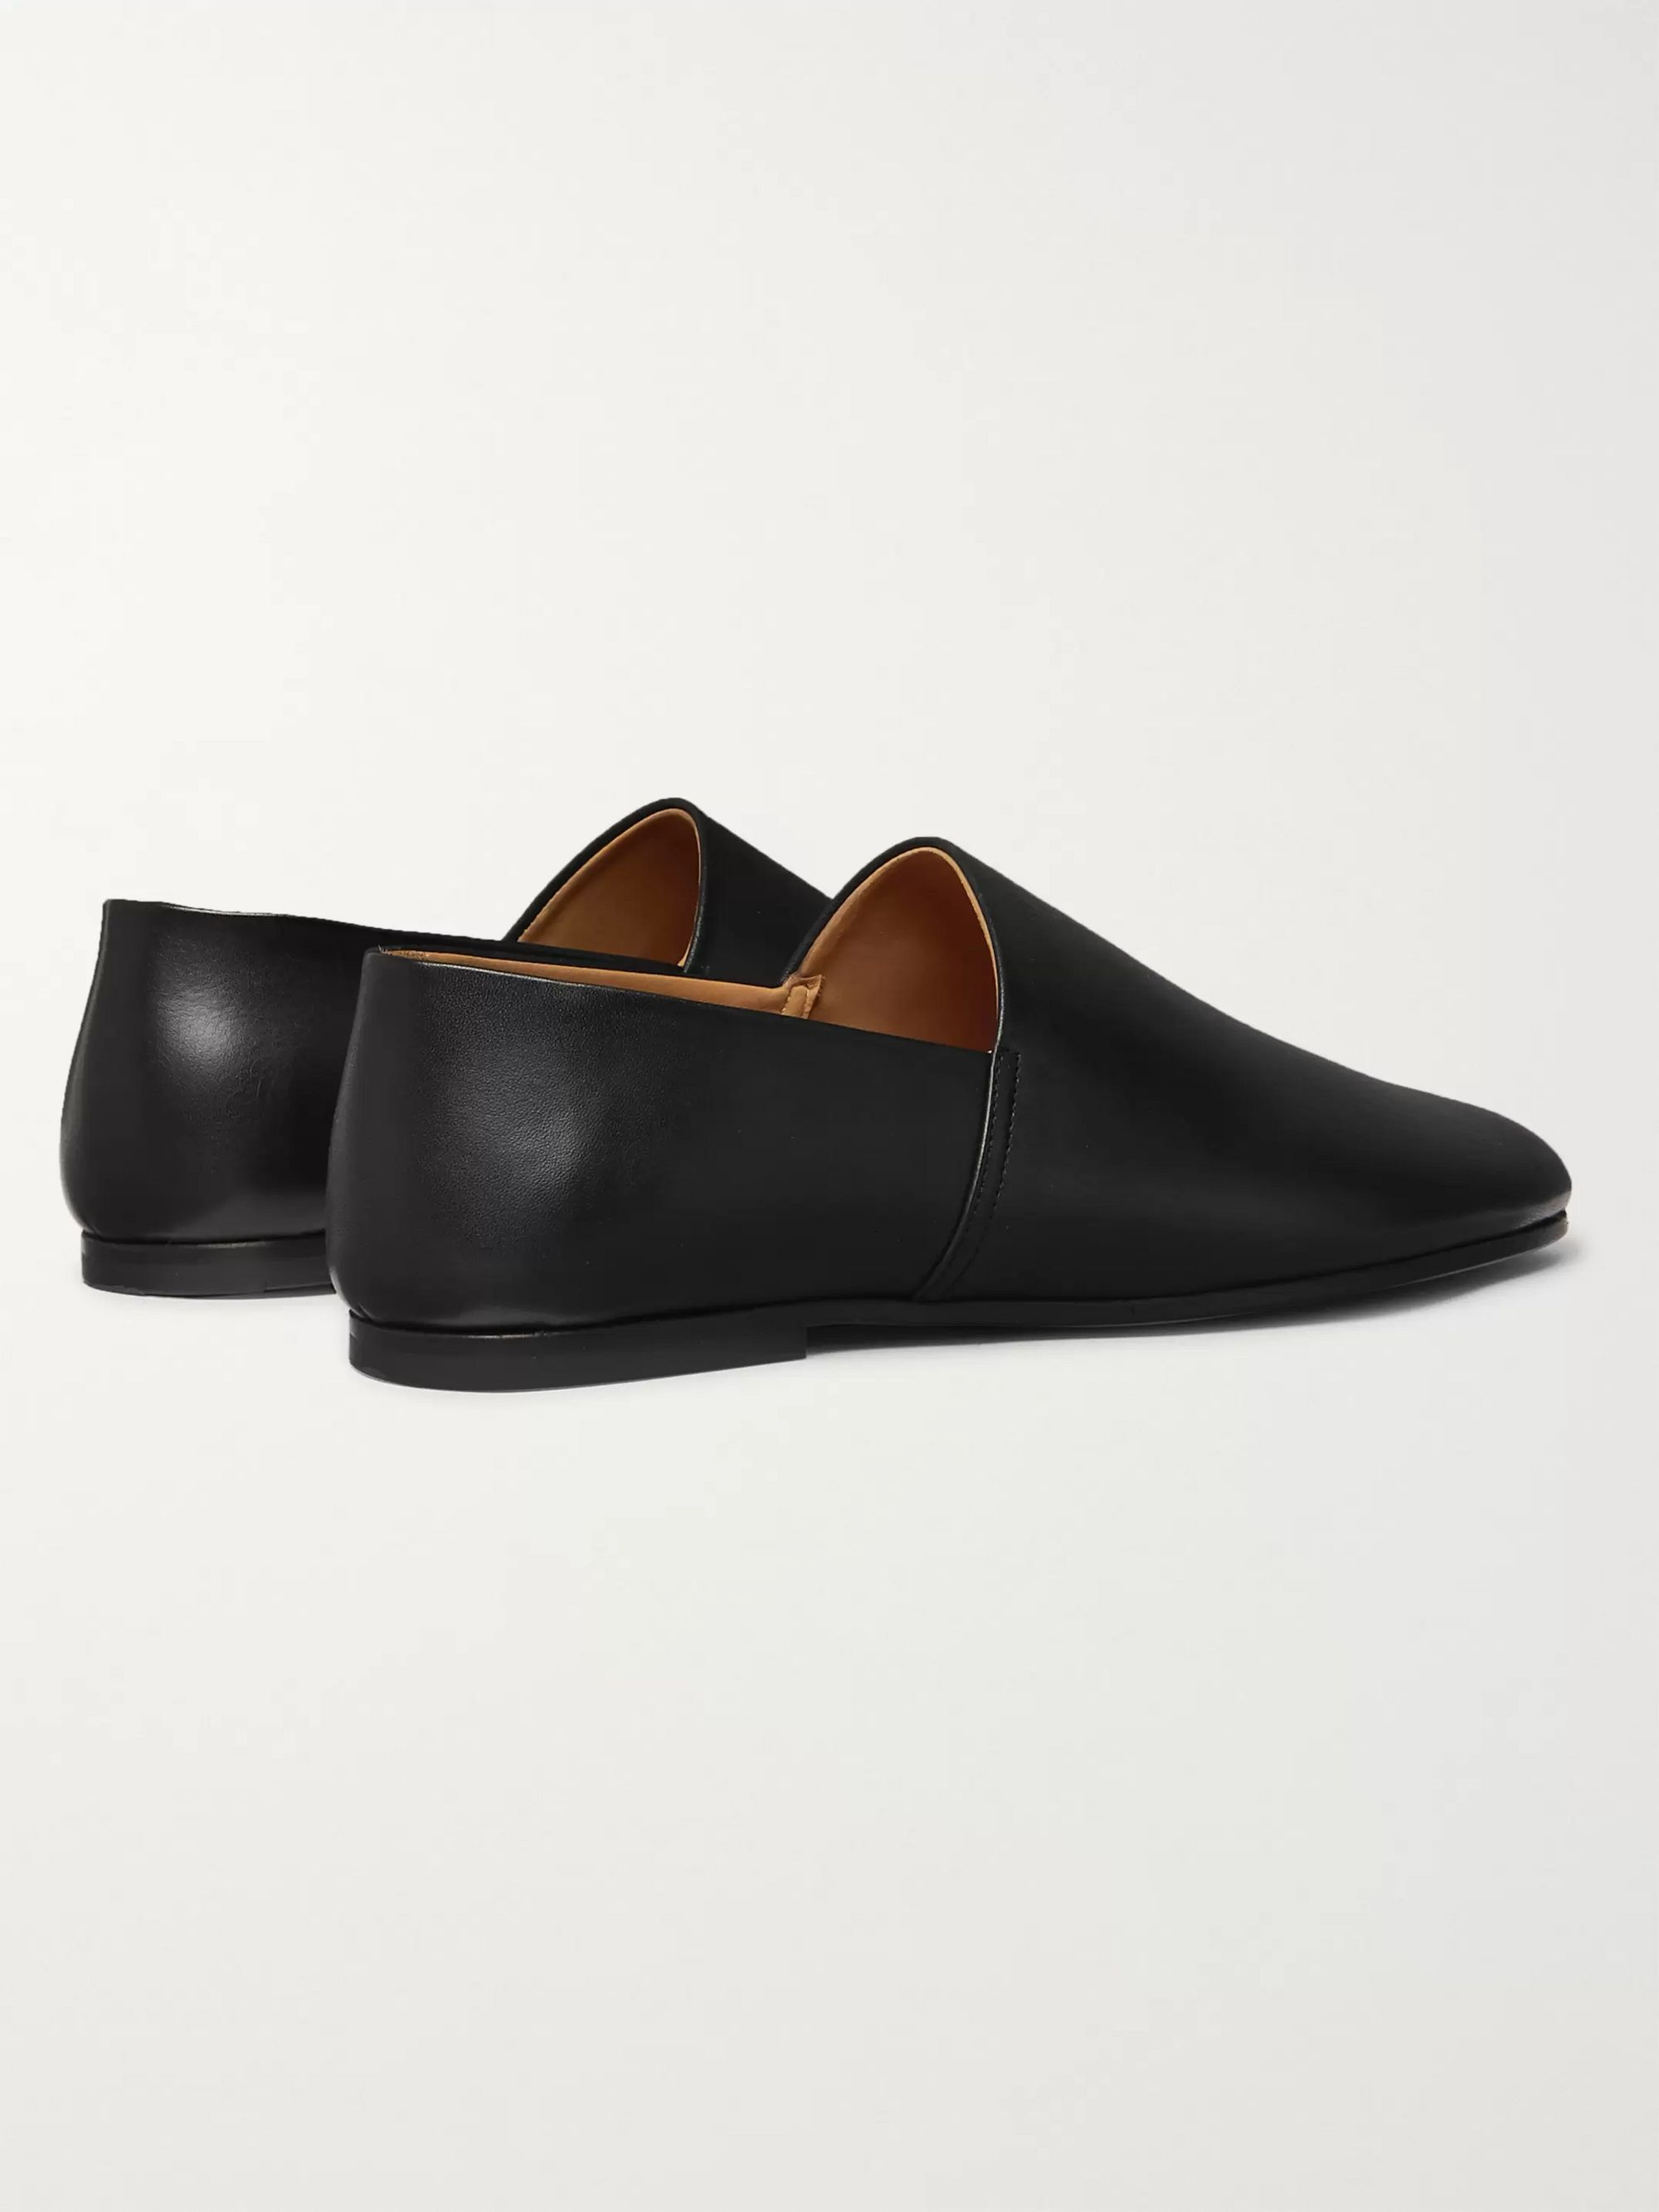 Sandro Collapsible-Heel Leather Slippers